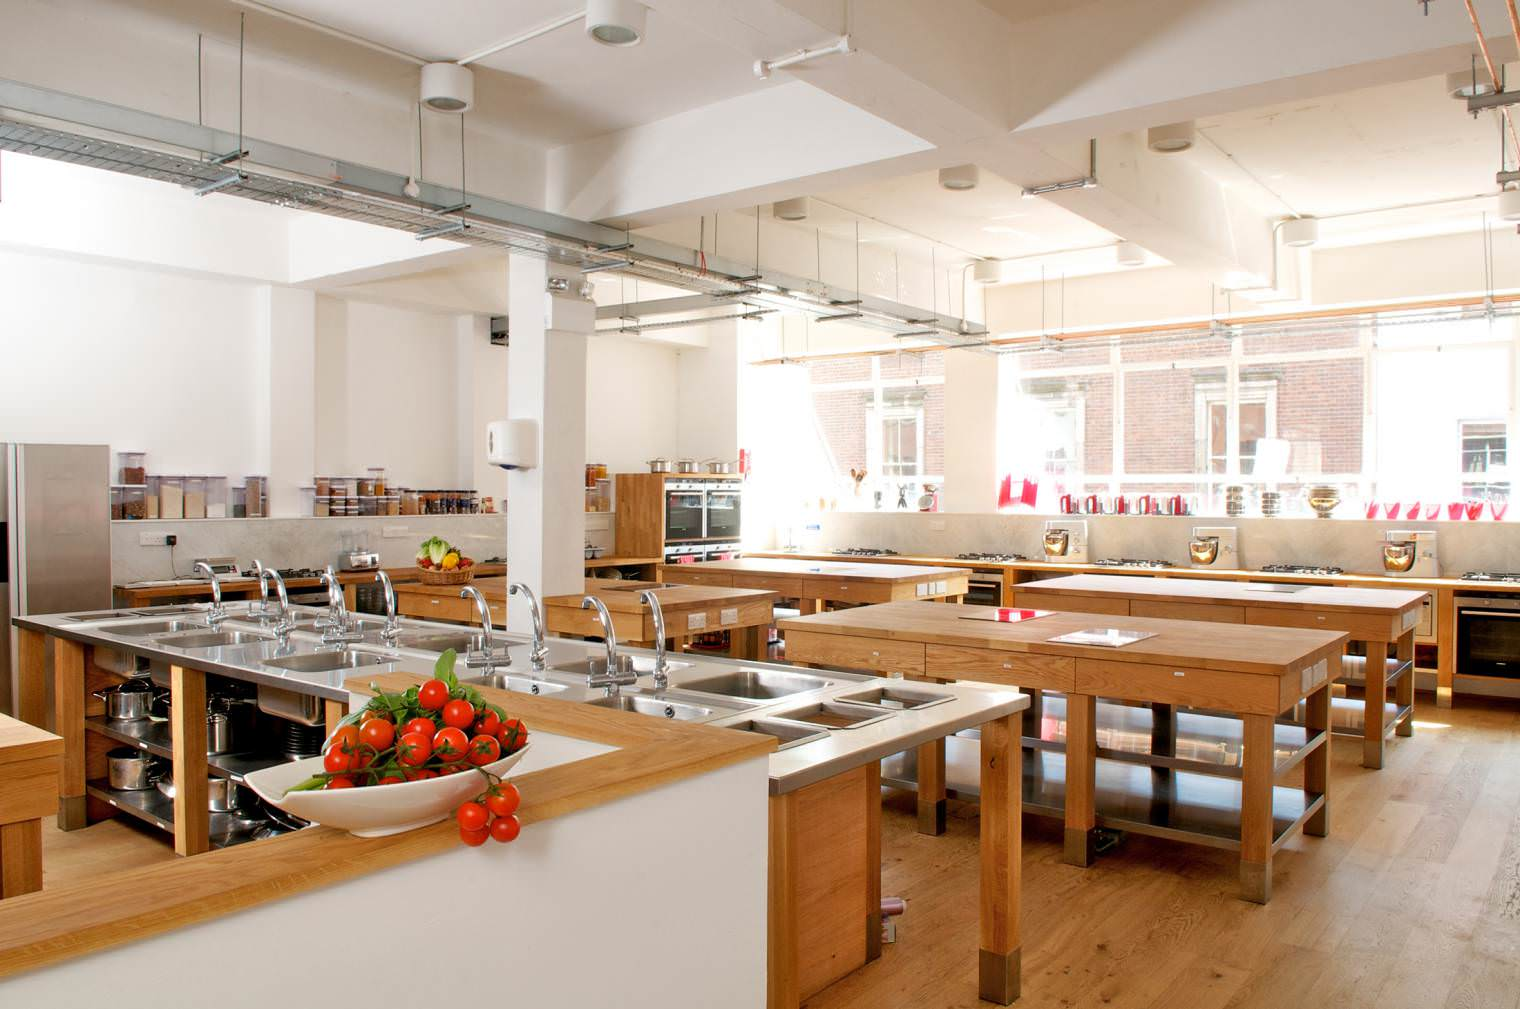 Cooks academy lawrence long architects - Kitchen design classes ...